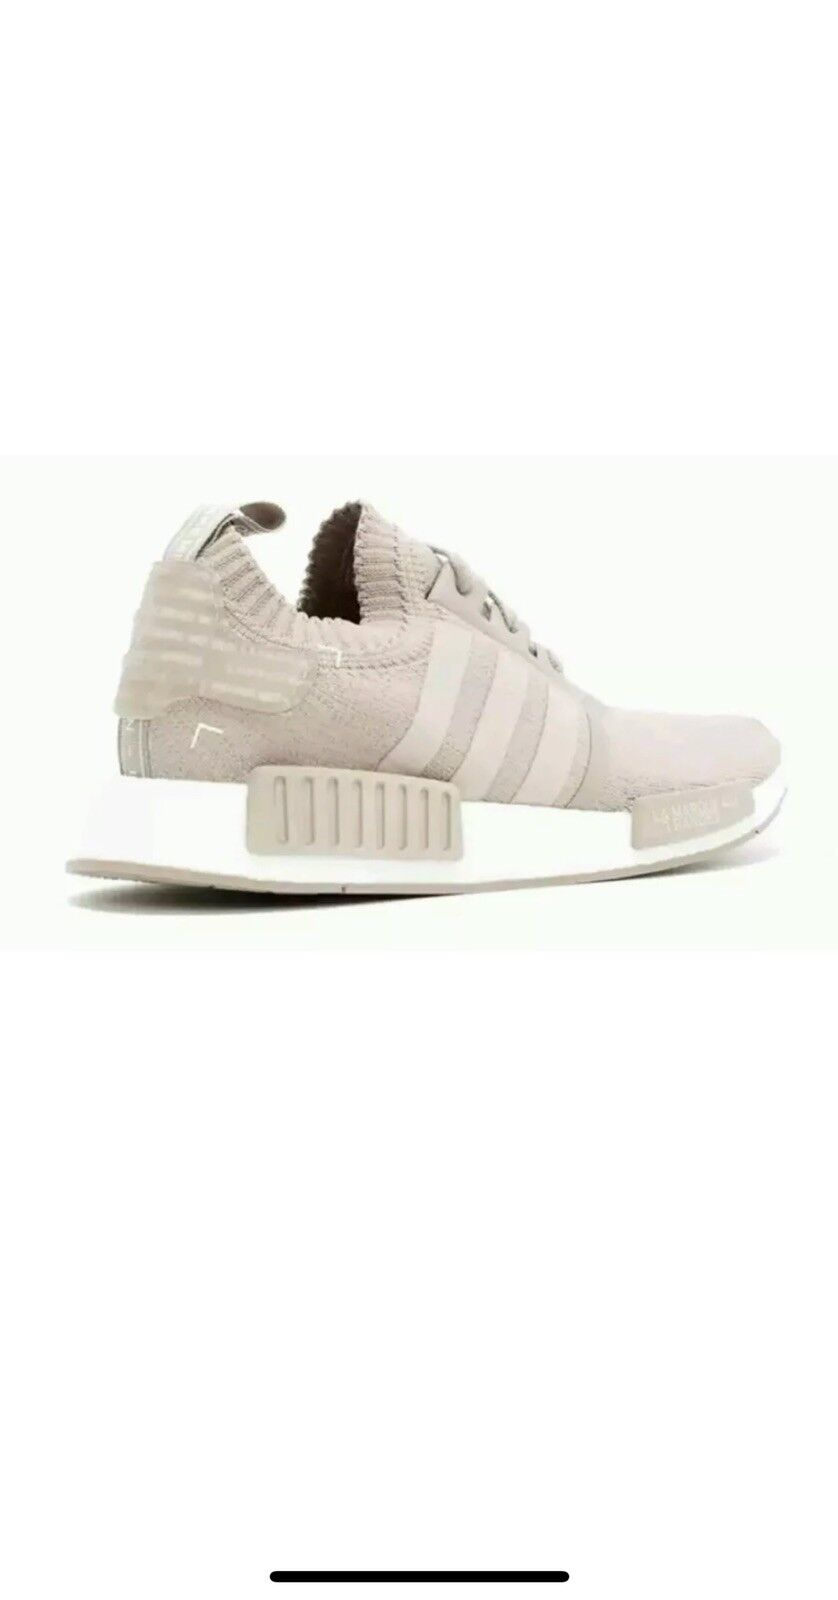 Details about Adidas NMD R1 PK